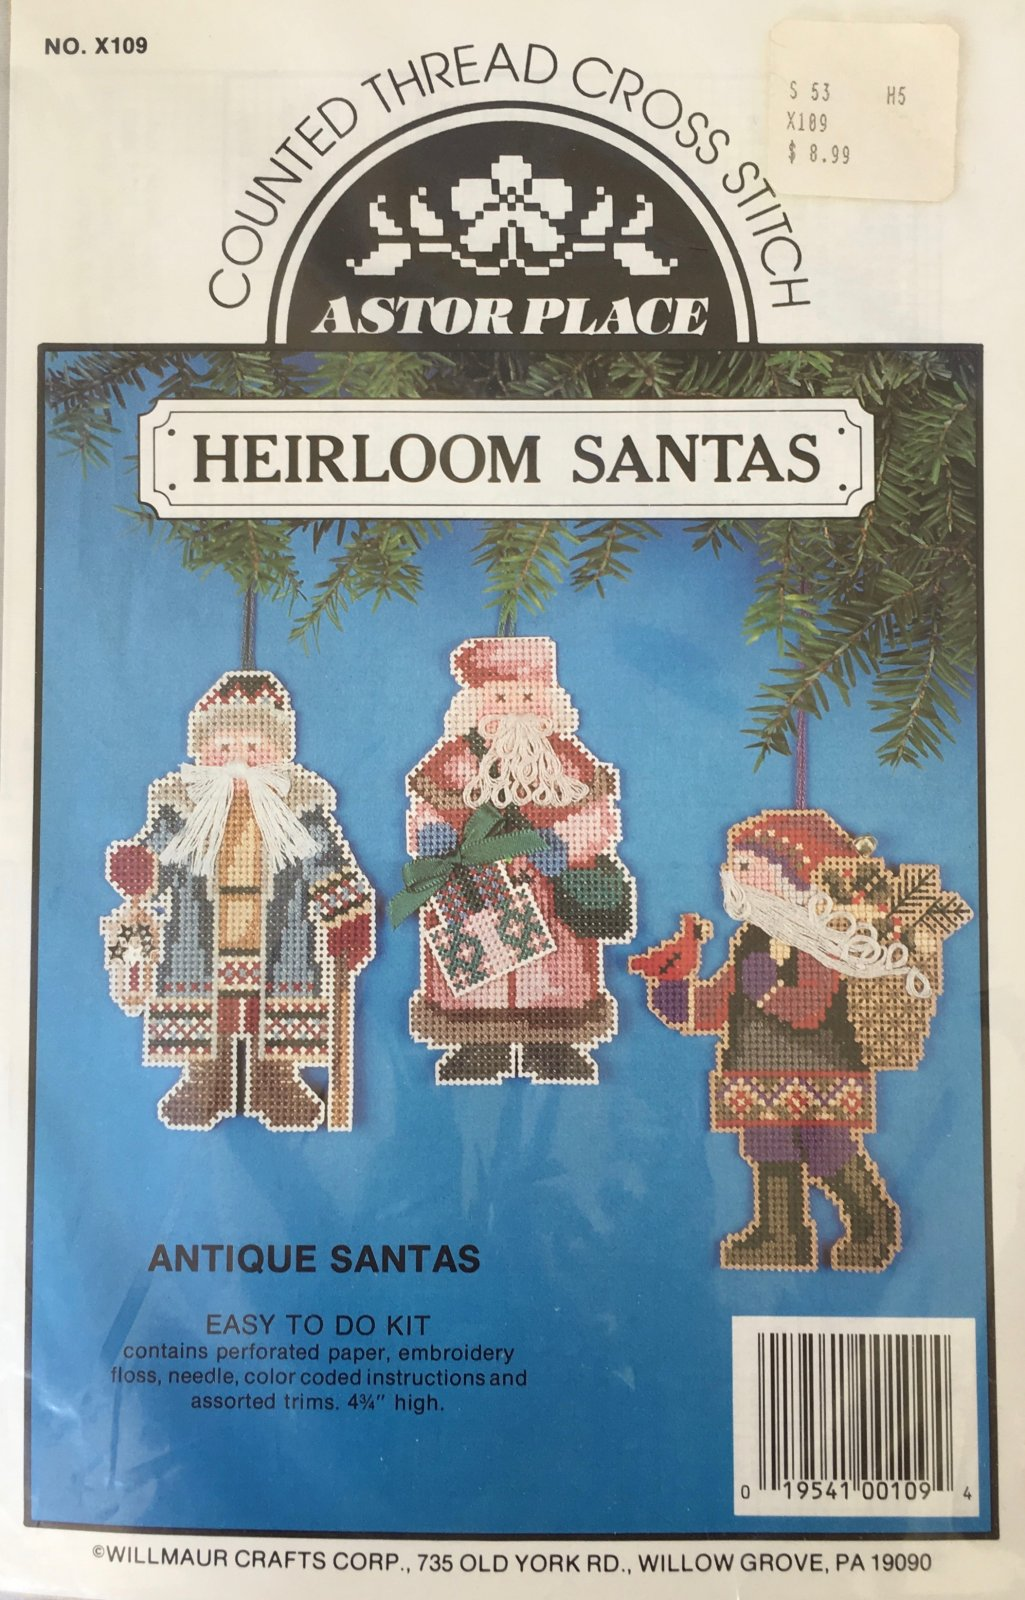 Astor Place: Antique Santas Kit X109